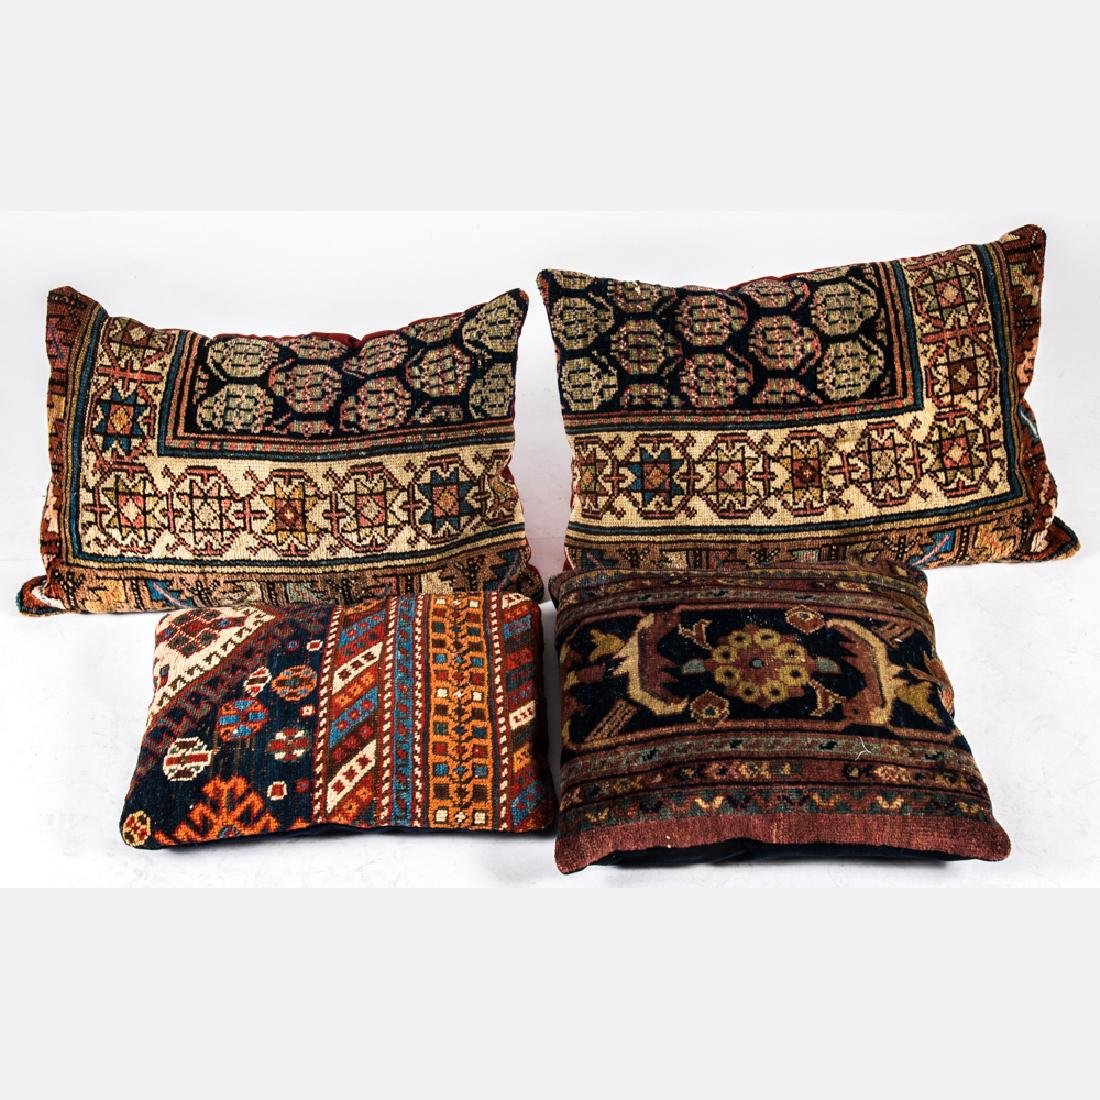 A Group of Four Rug Fragmented Upholstered Pillows,